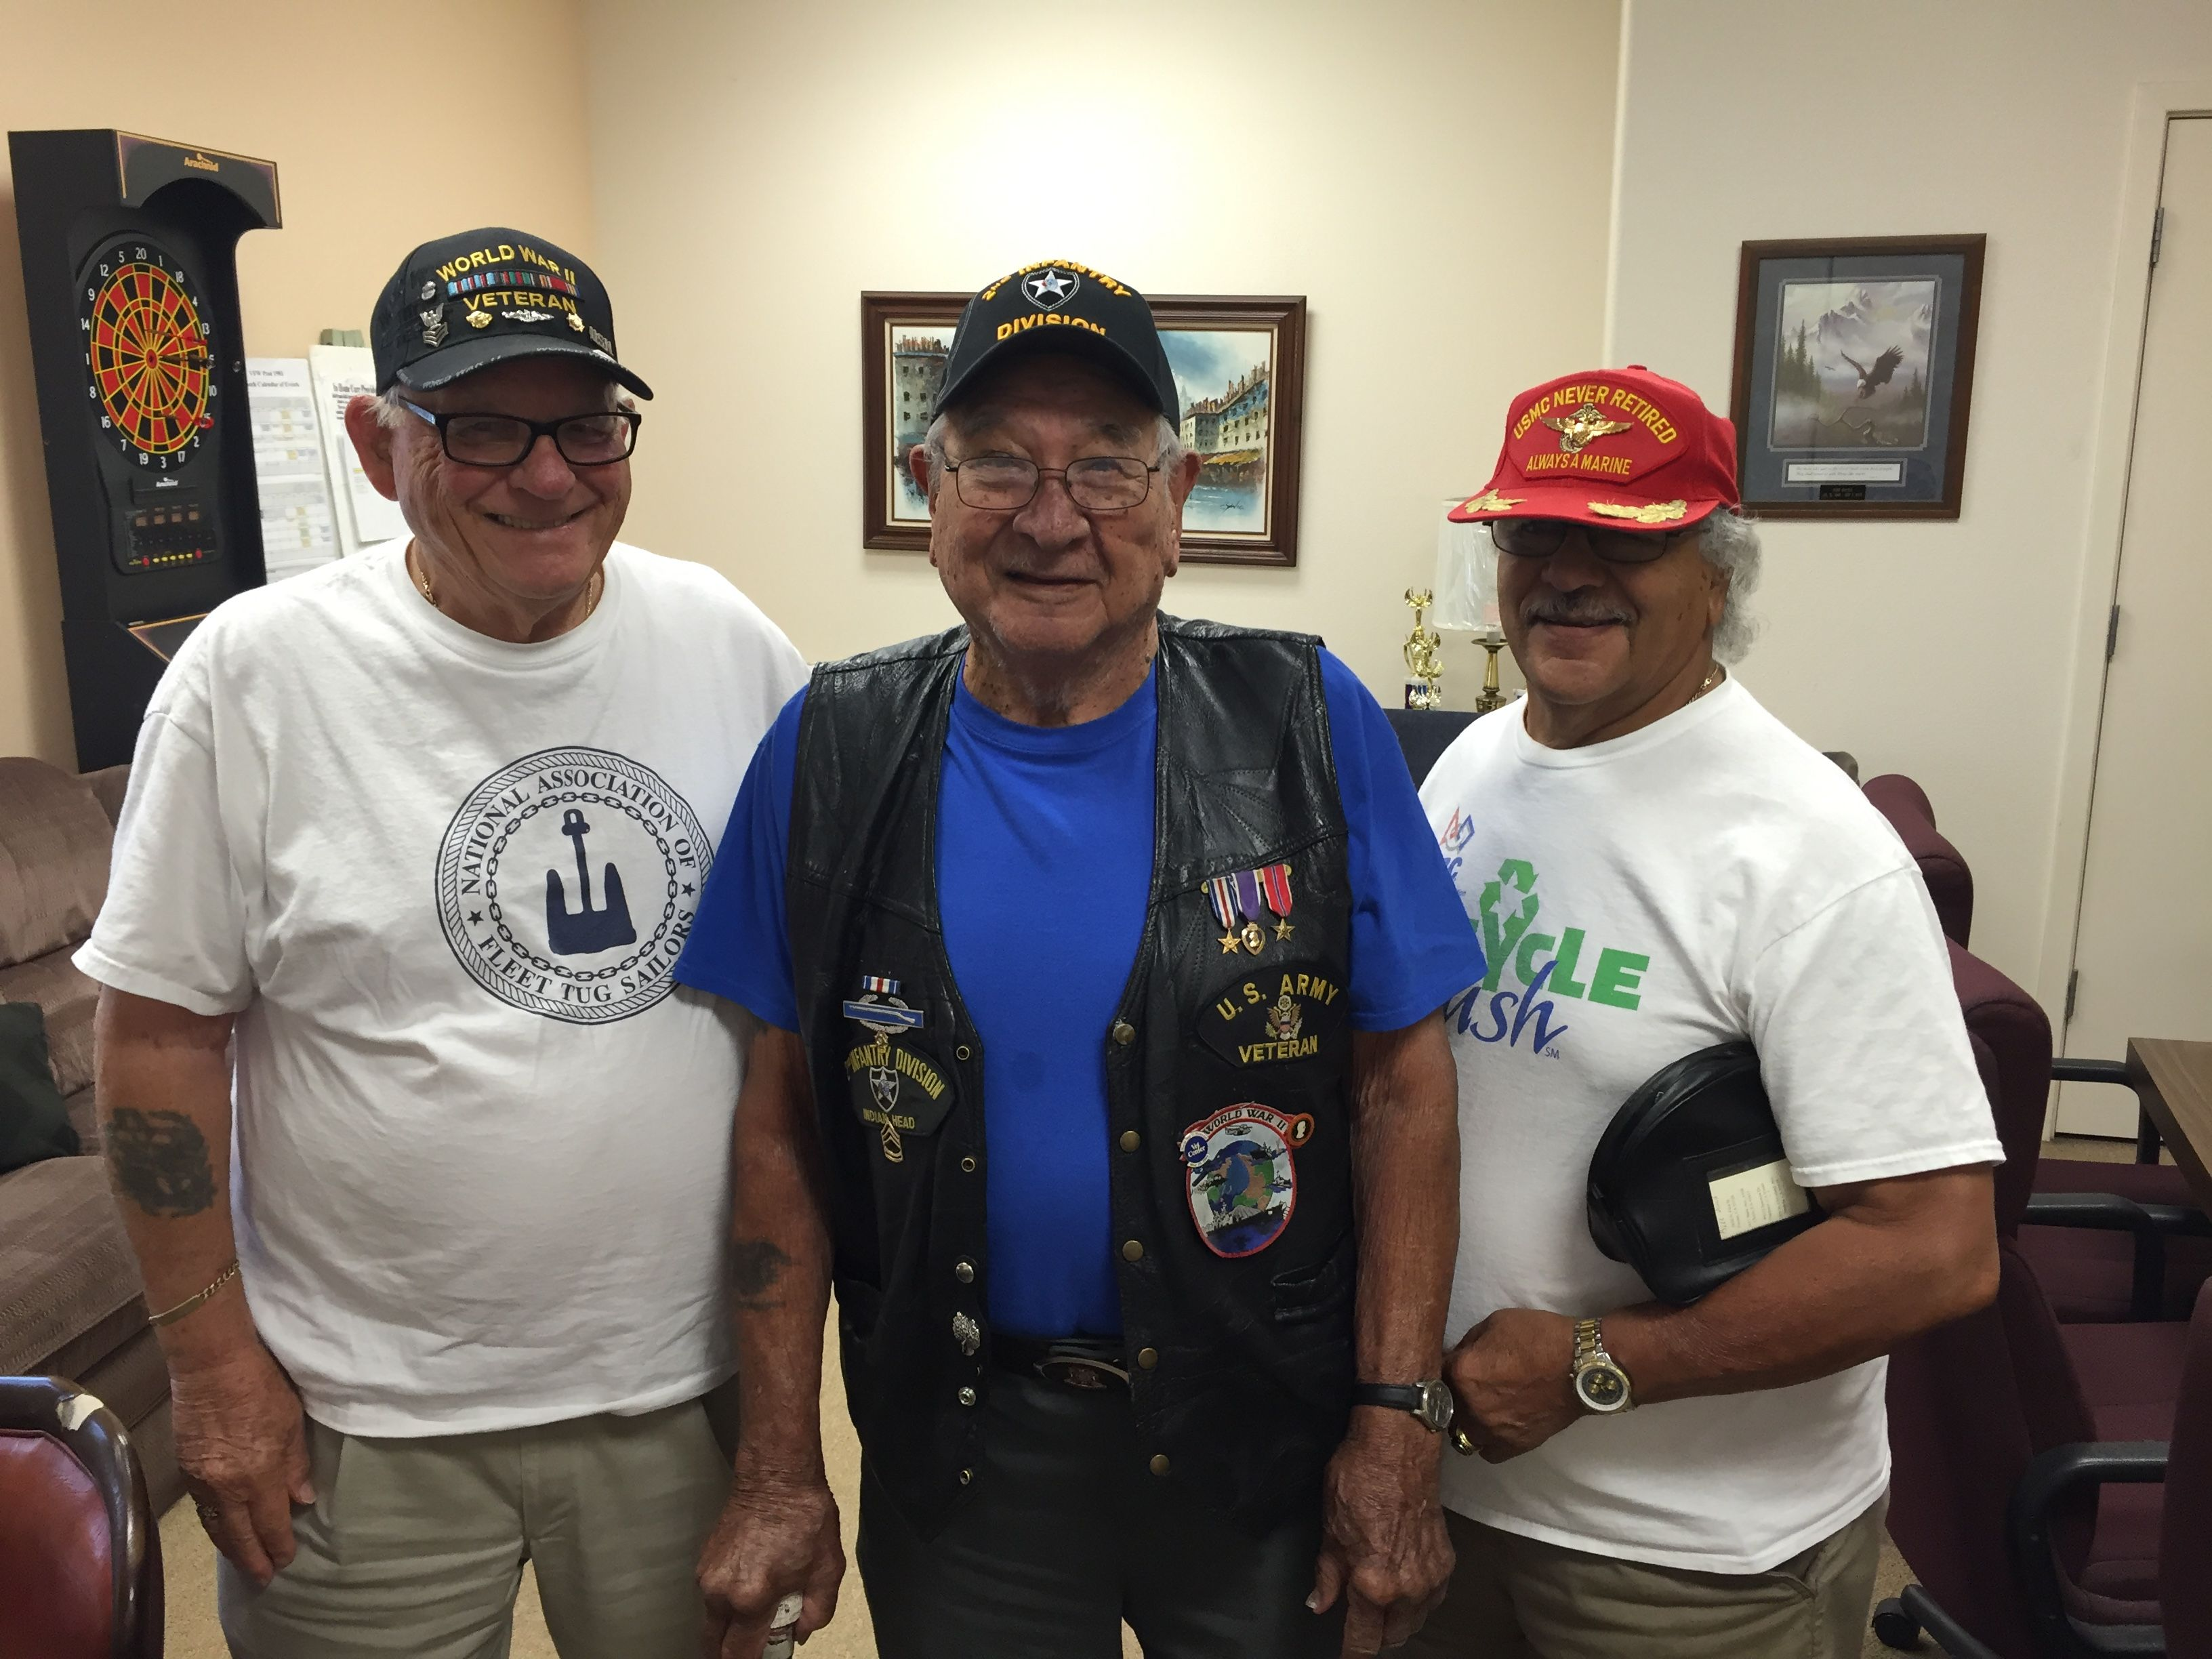 Martin (middle) at VFW Post 1981 in Madera with fellow veterans Mike De Cesare (left) and Bill Jones. For more photos, visit the Hometown Heroes facebook page.